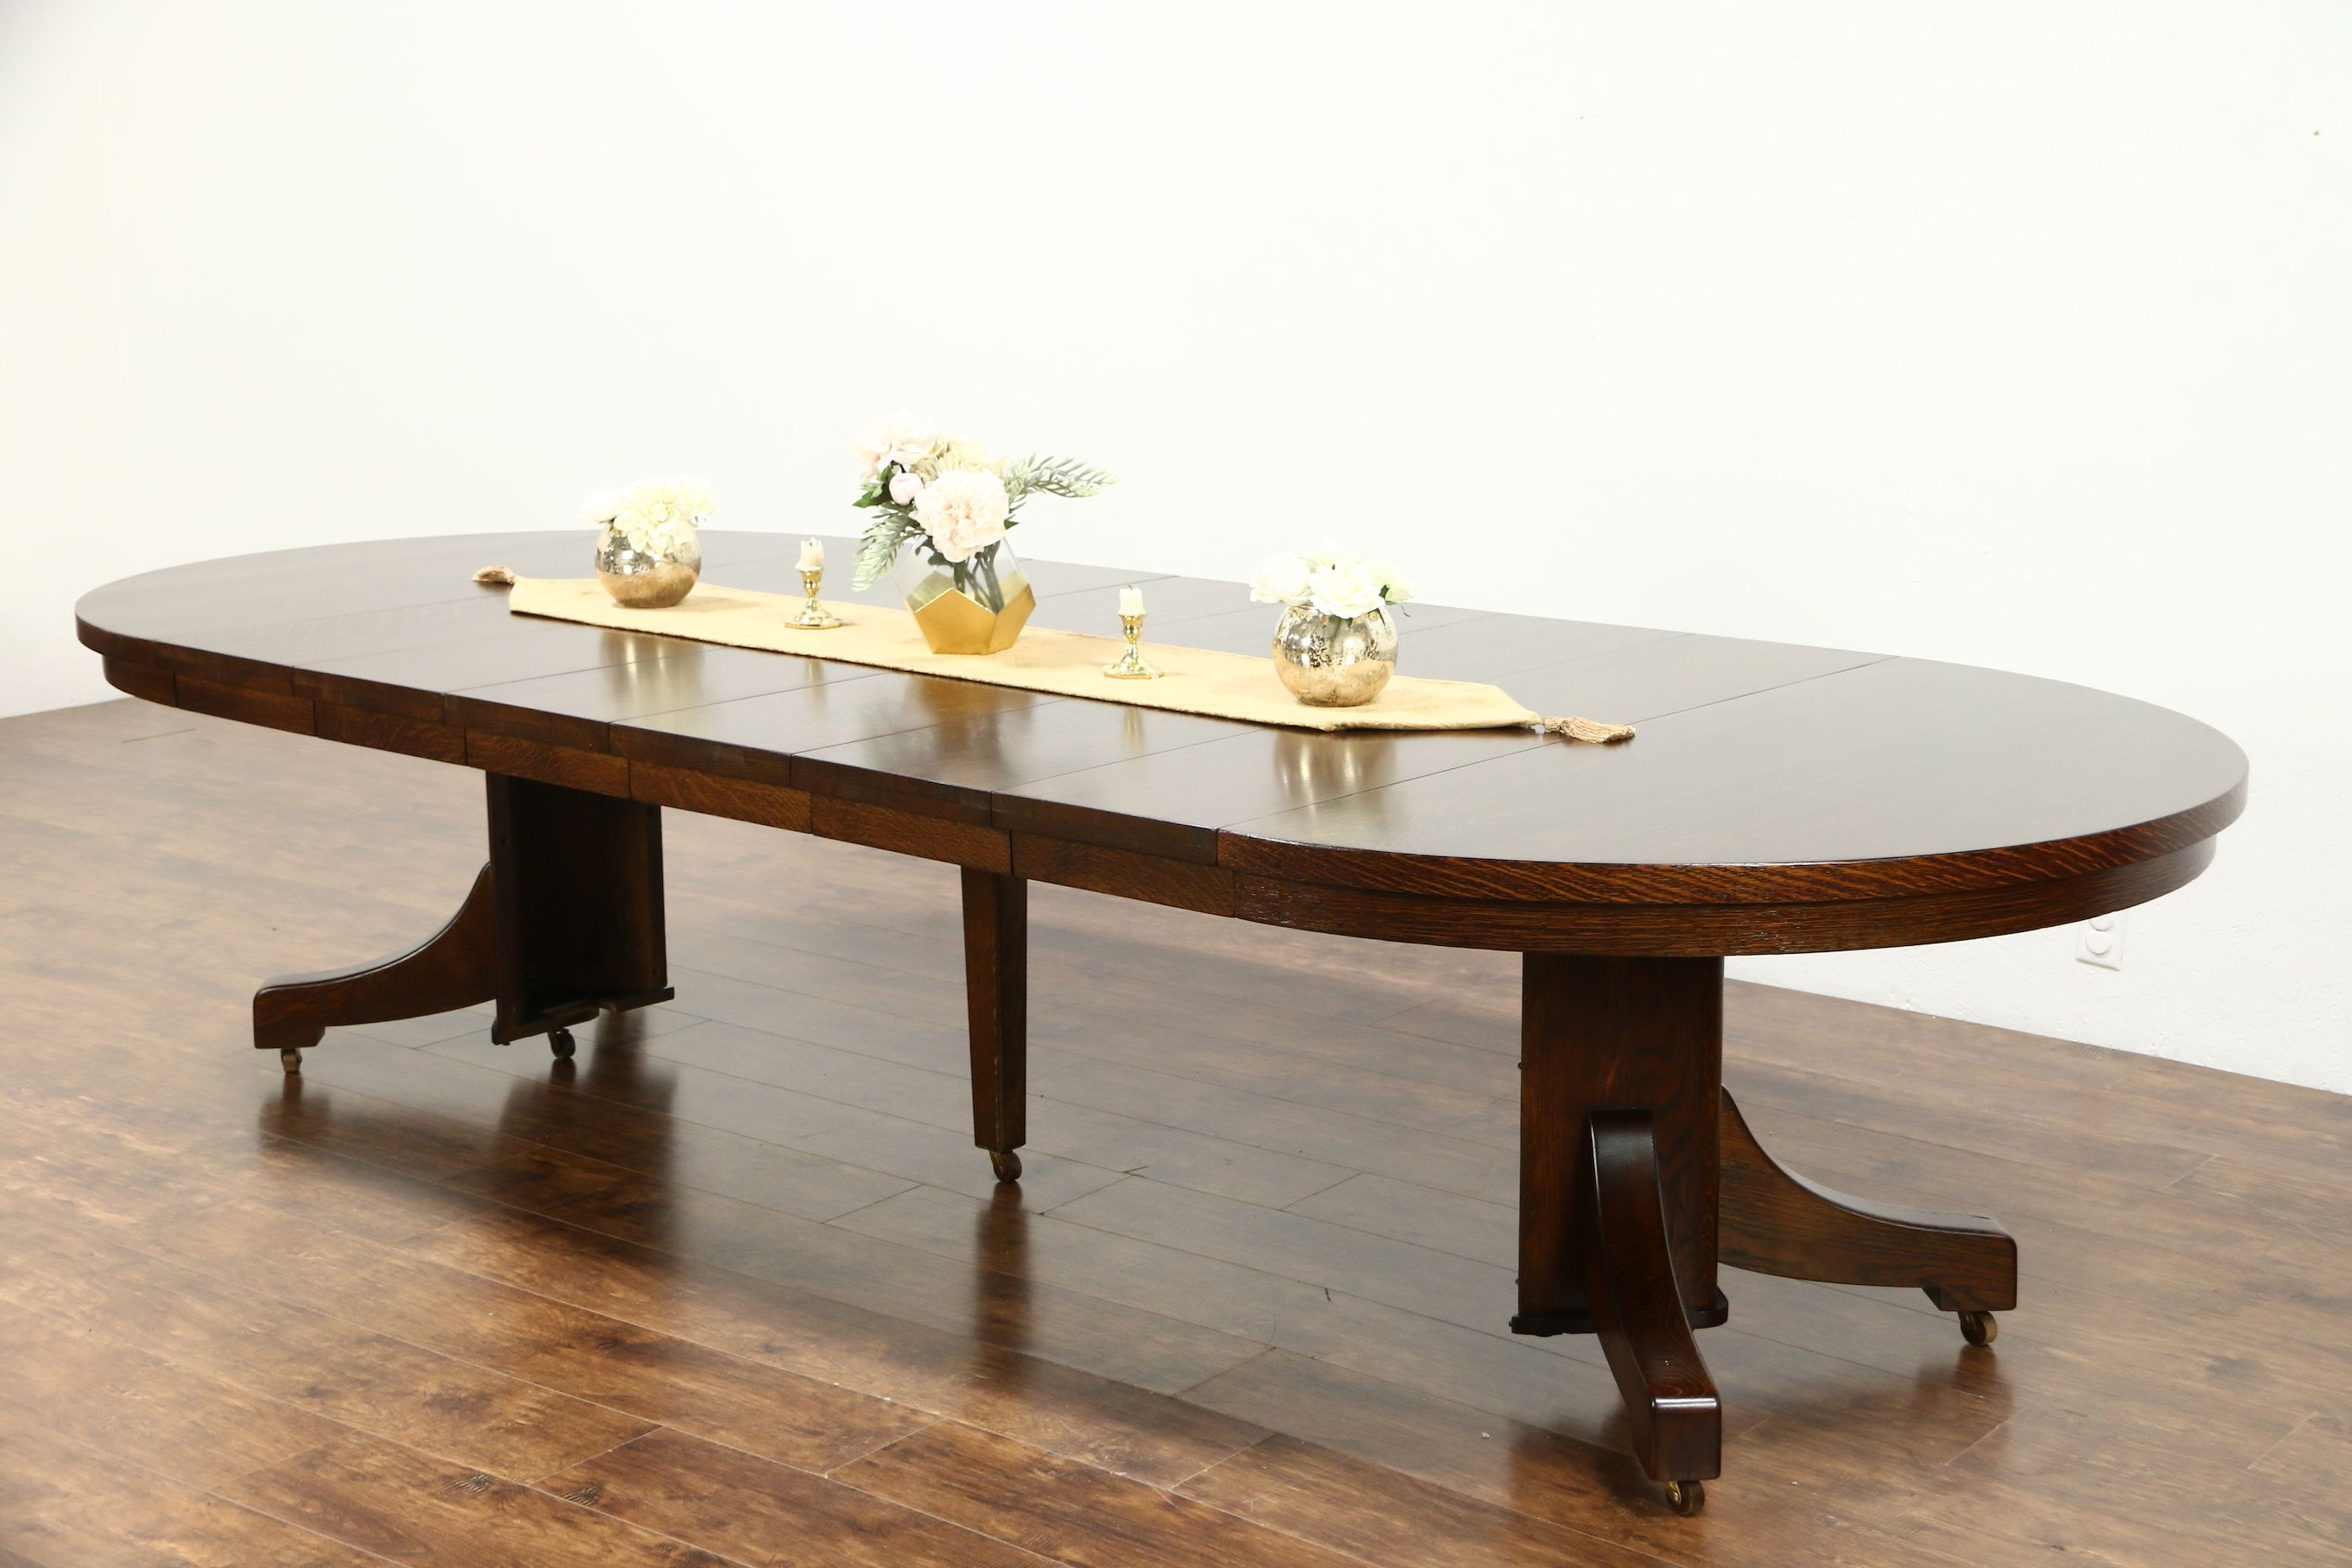 Craftsman Round Dining Tables Throughout Best And Newest Sold – Arts & Crafts Mission Oak Antique Round Craftsman Dining (View 20 of 25)